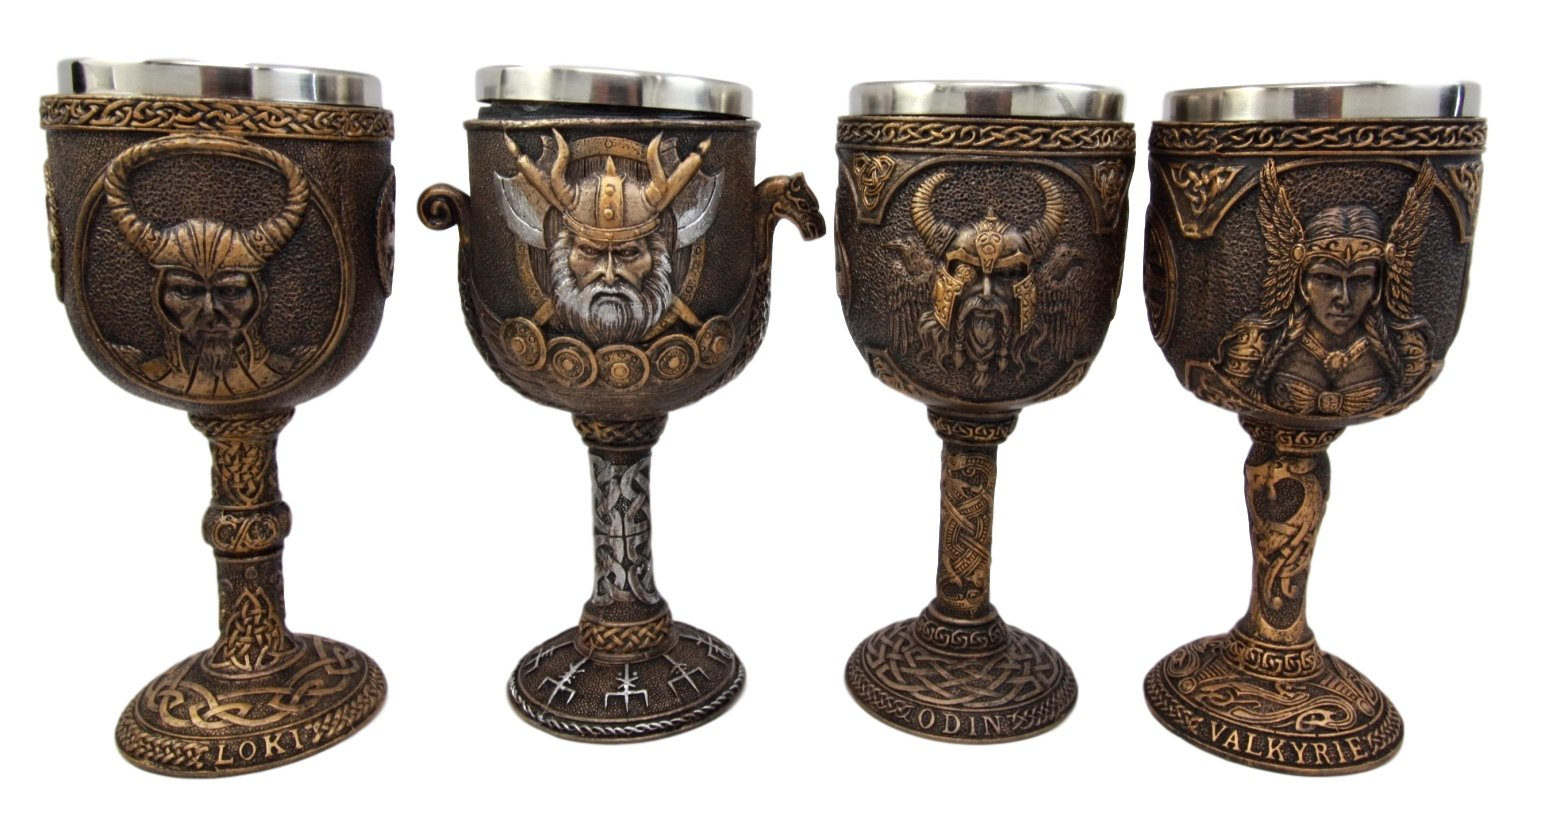 Atlantic Collectibles Norse Mythology Viking Deities Odin Valkyrie Loki Battle Longship 7oz Resin Wine Goblet Chalice Set of 4 With Stainless Steel Liner